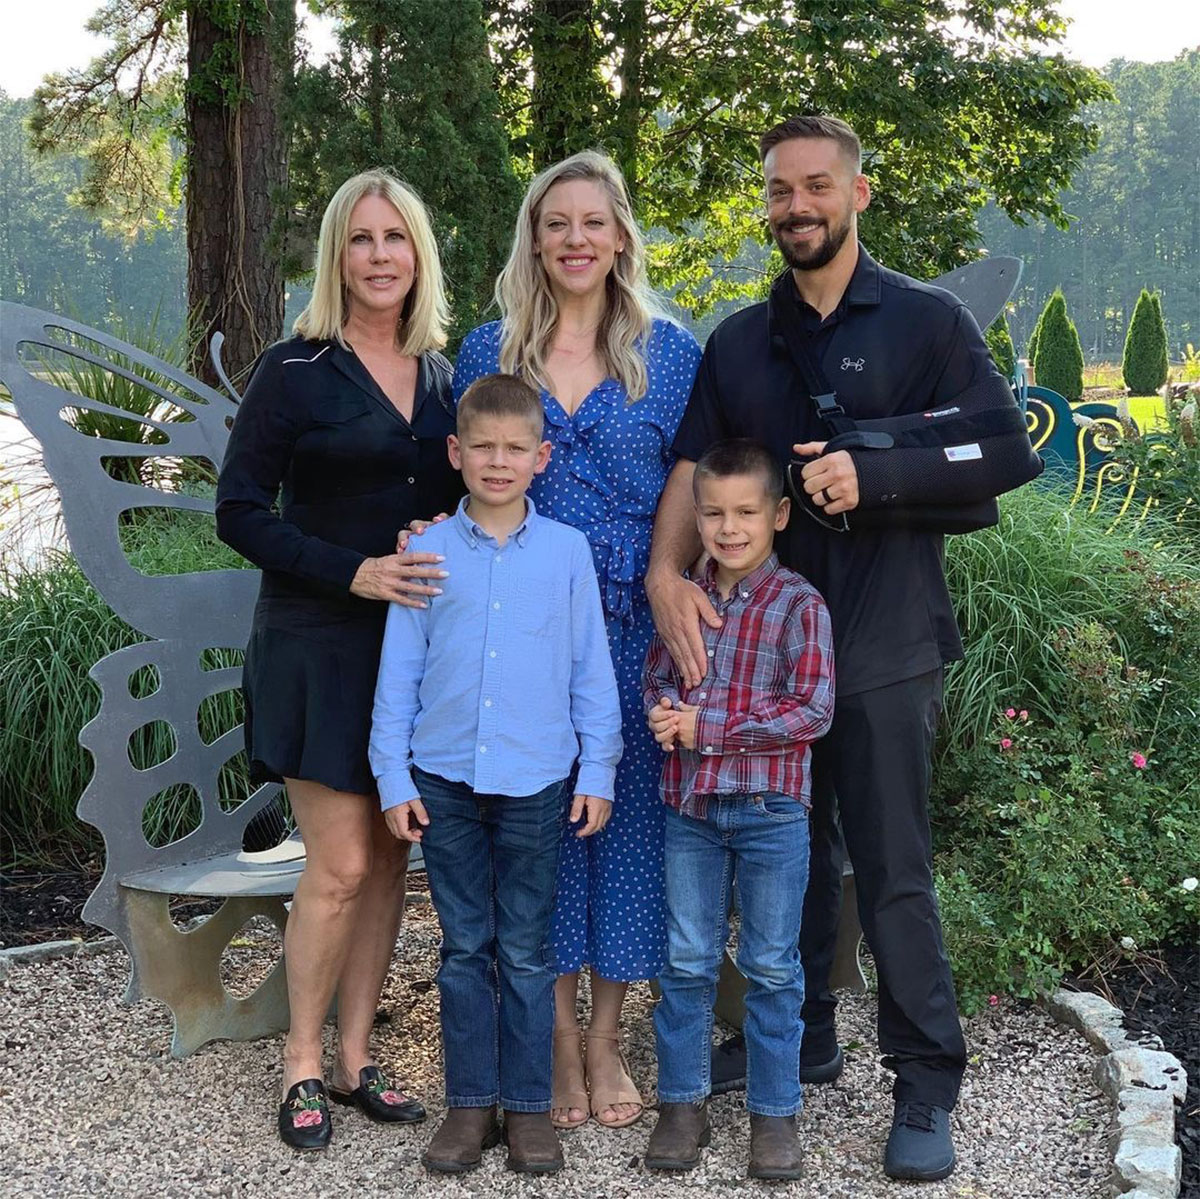 Briana Culberson, Vicki Gulvanson's Daughter, is Expecting a Fourth Child